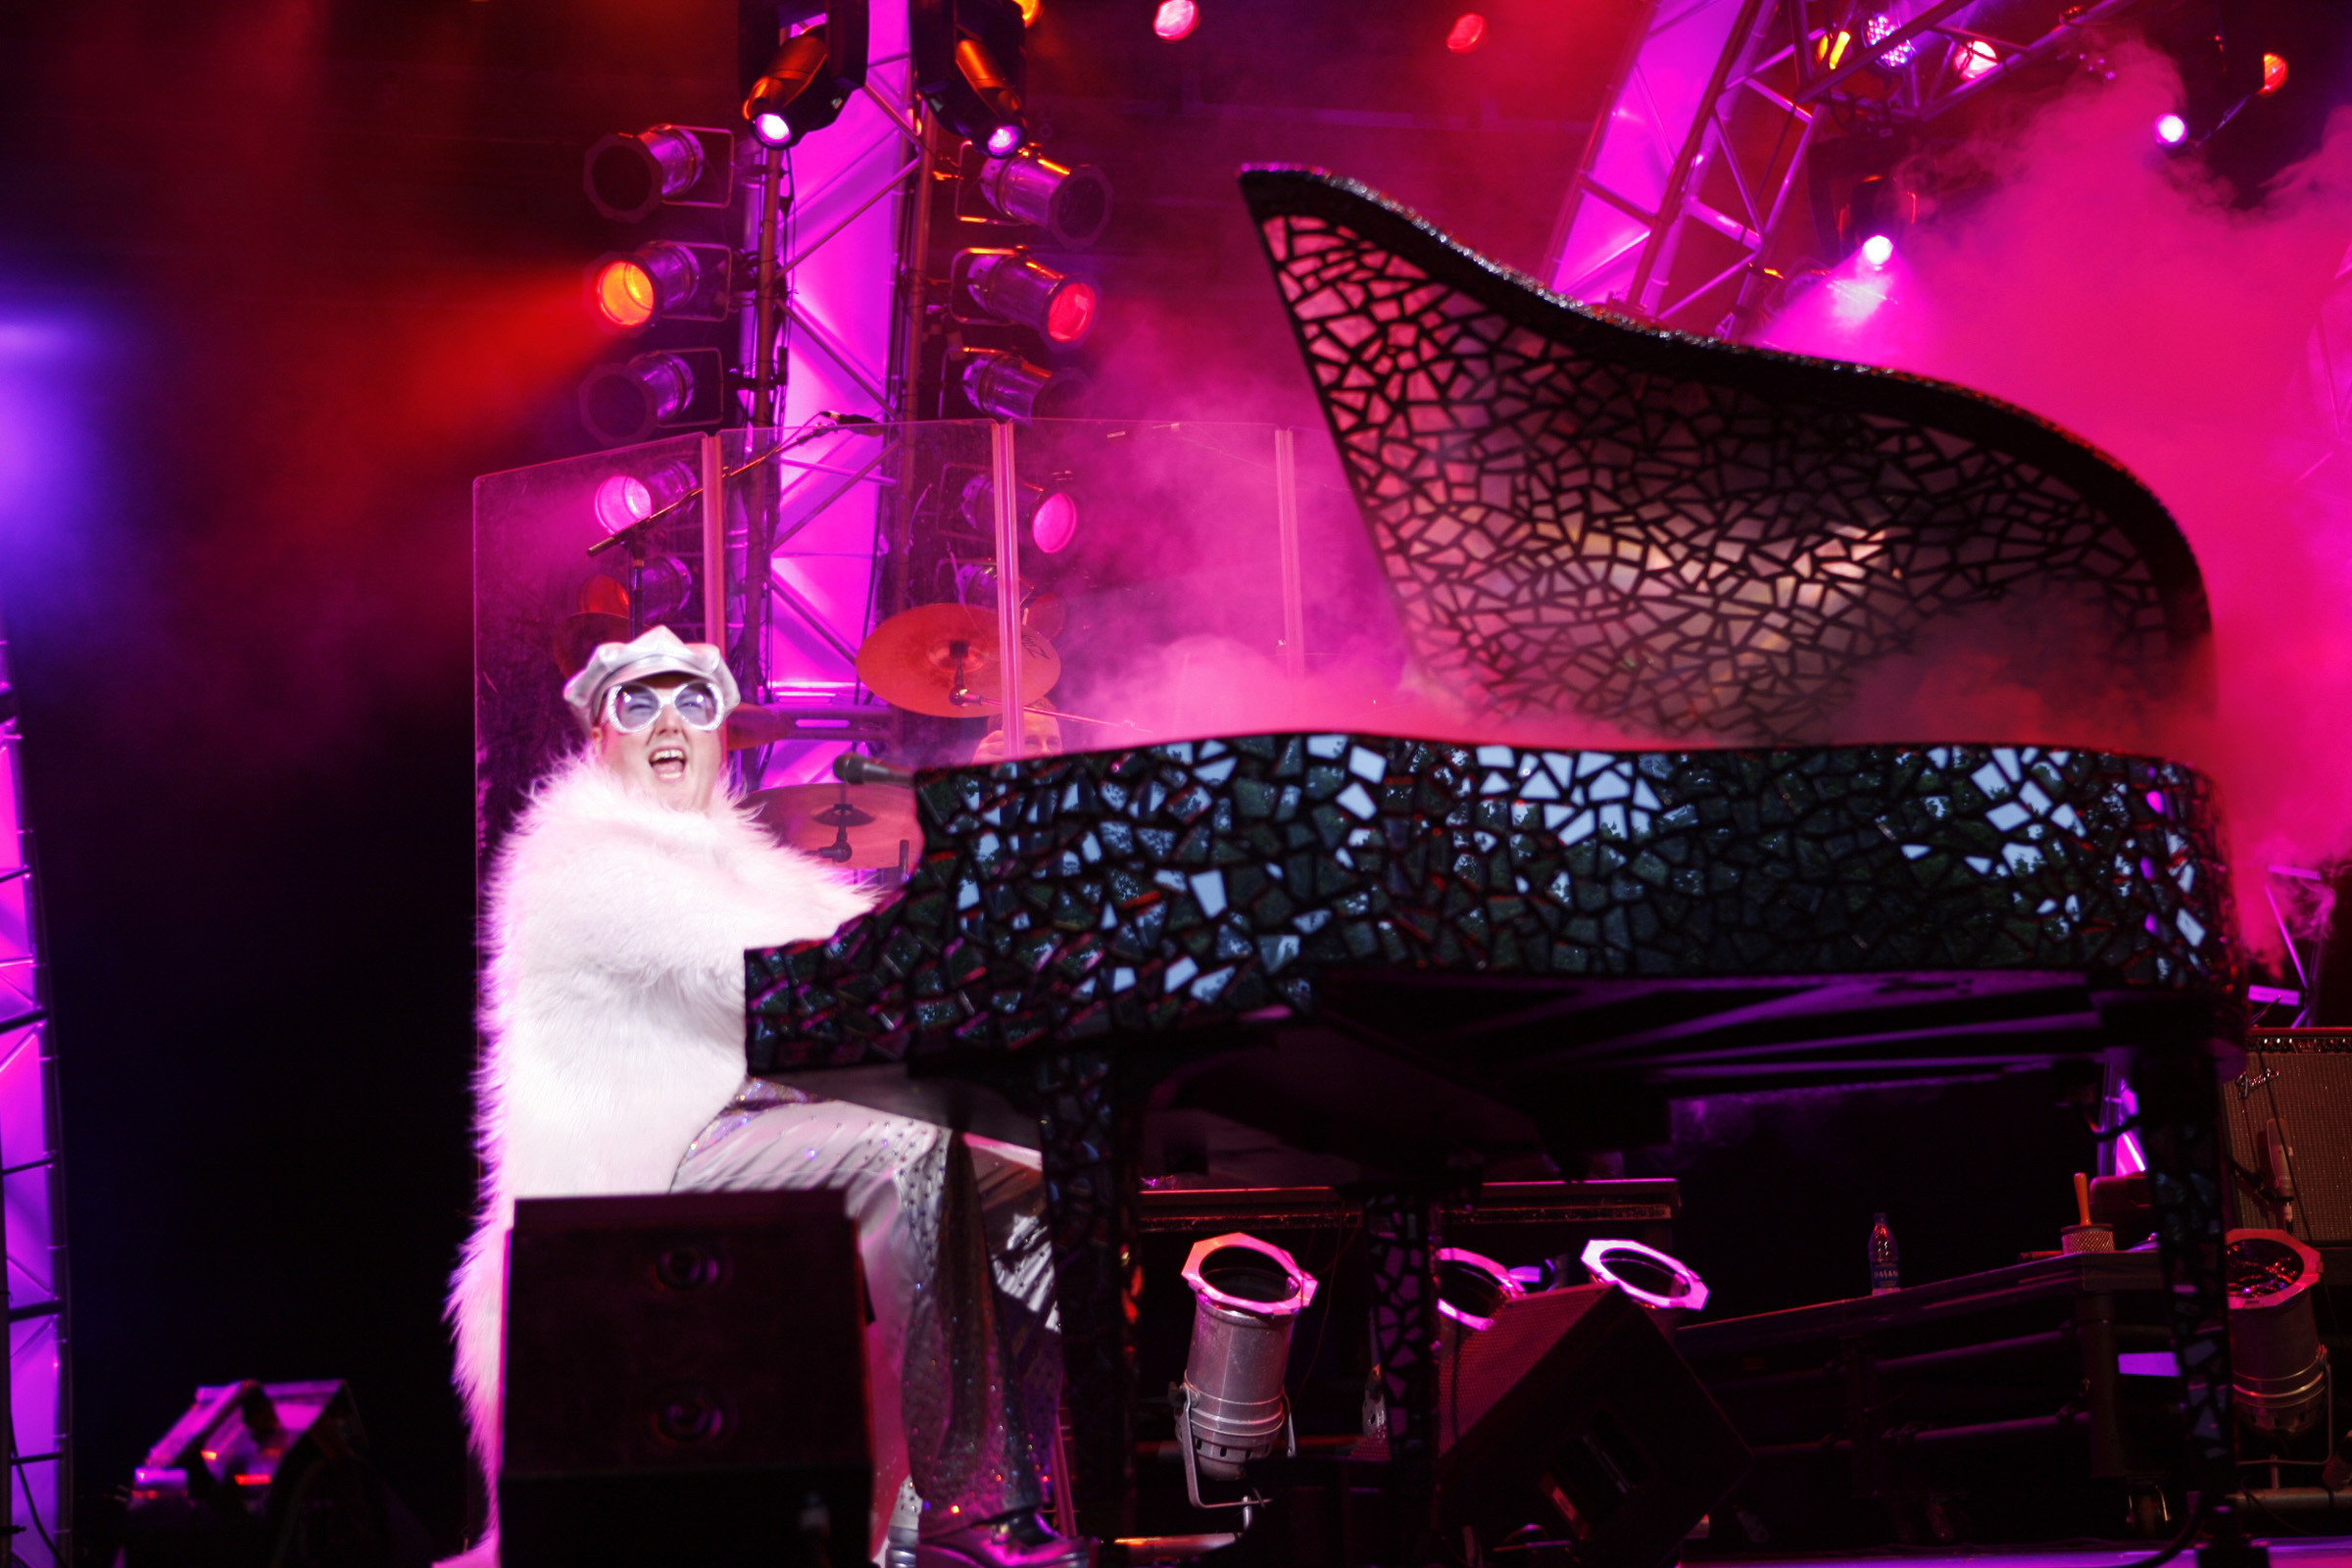 Captain Fantastic, an Elton John tribute band, will perform in Echo Park on Thursday, July 13.